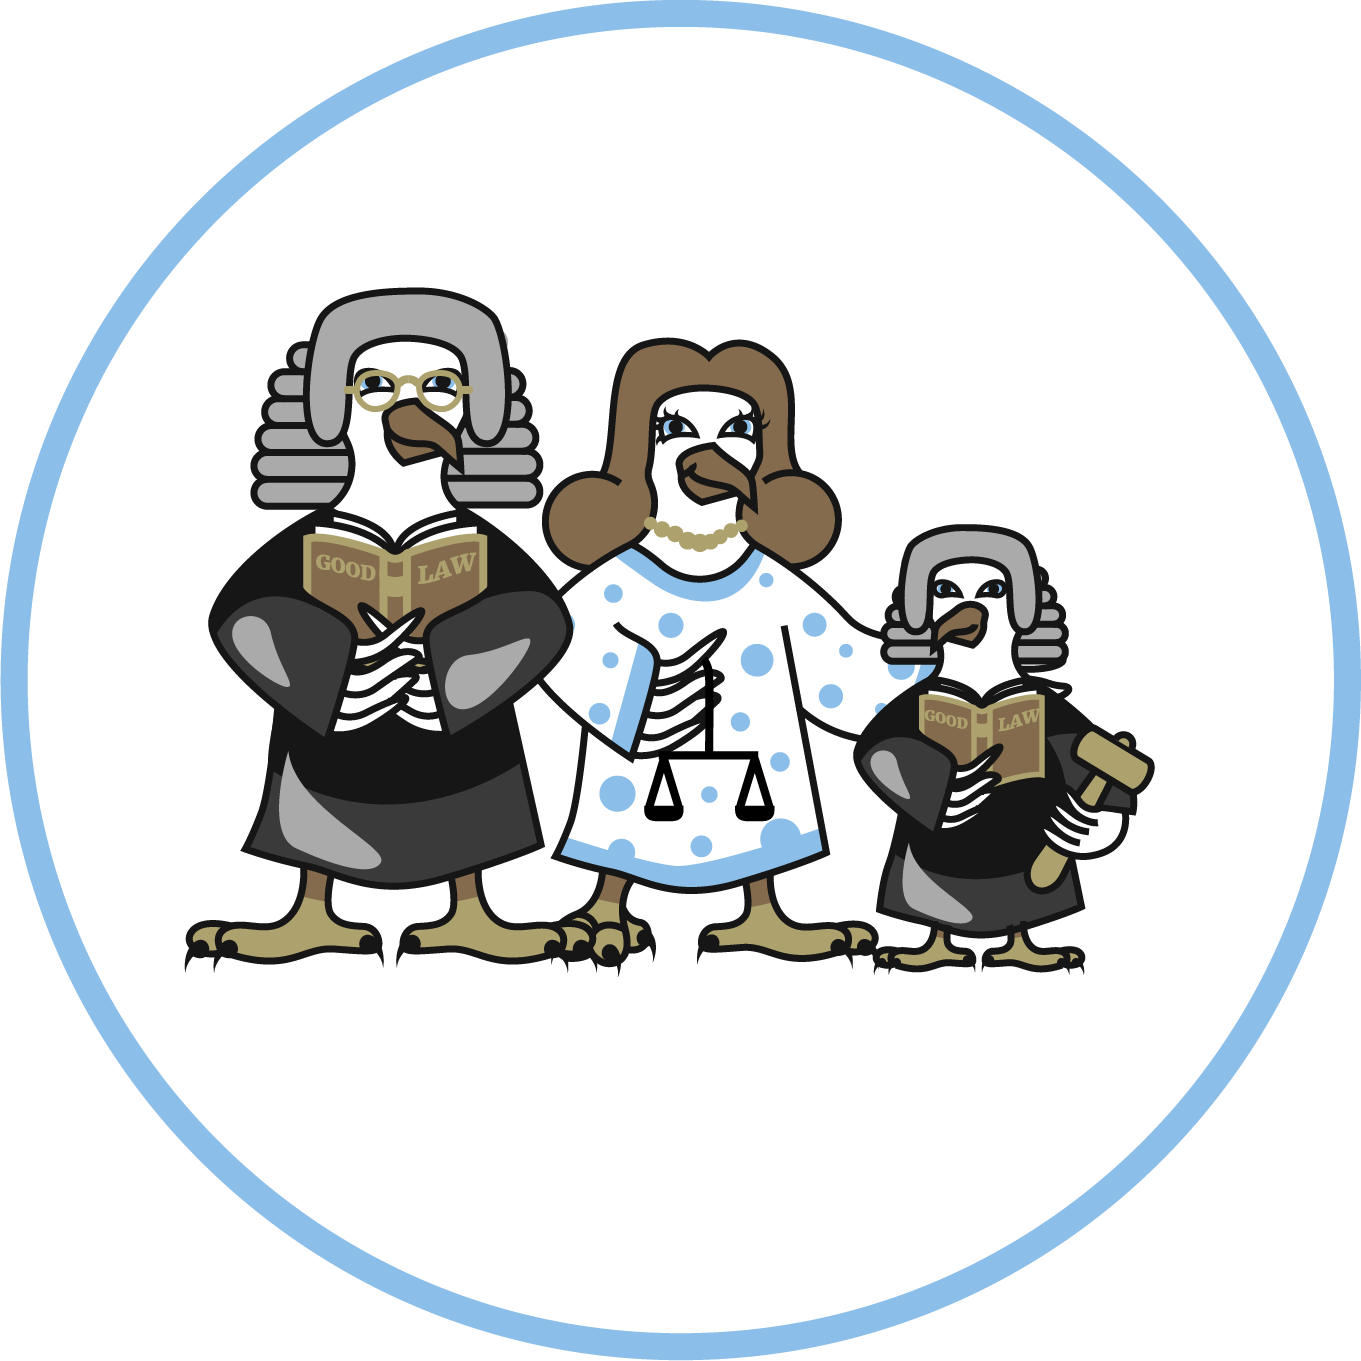 jpg Lawyer clipart right to information. Familylegaleaglewithroundpng png family law.